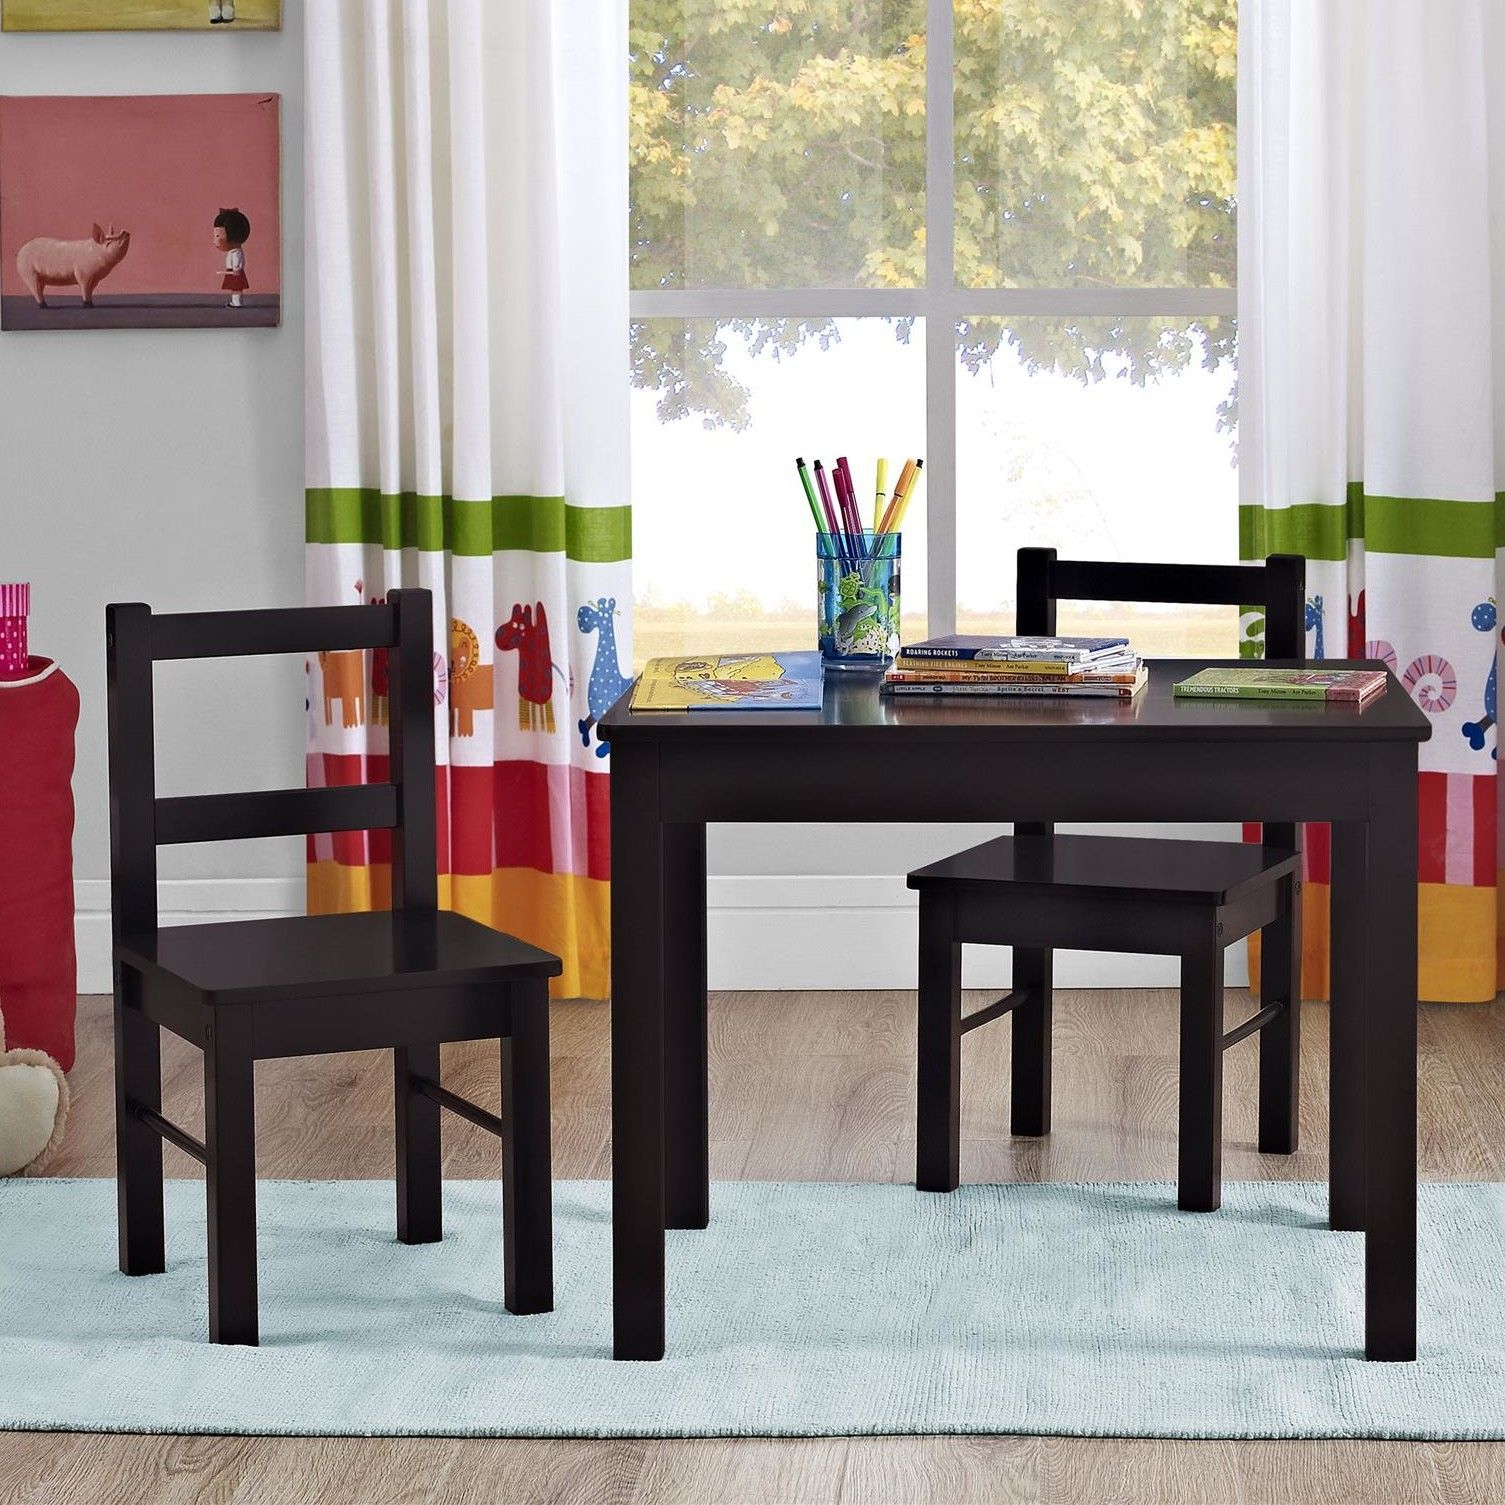 Kids 3 Piece Table & Chair Set Products Pinterest